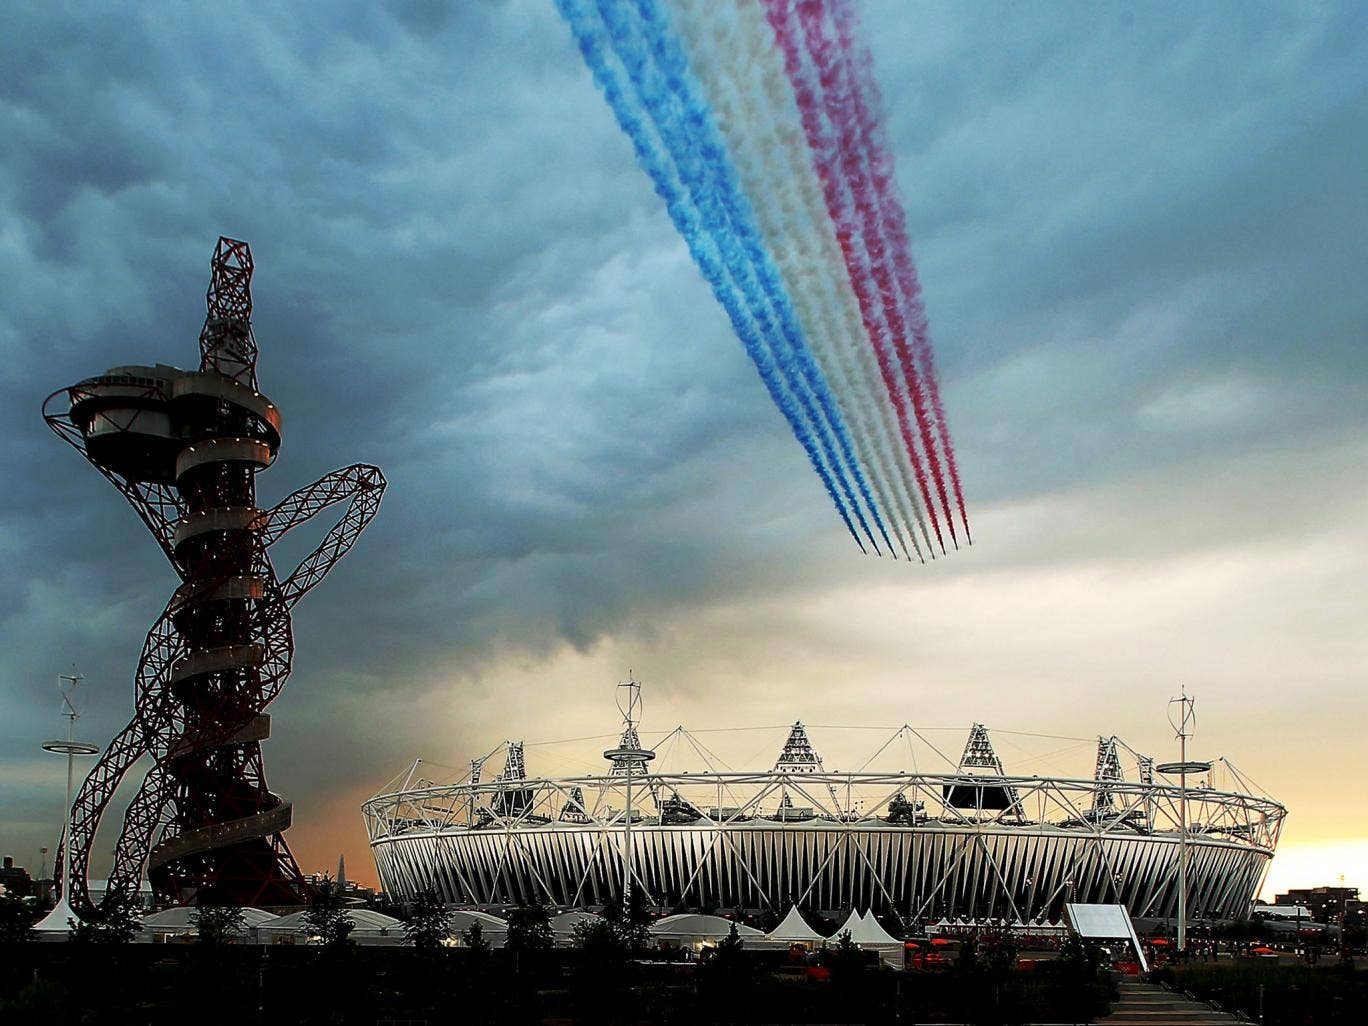 The Red Arrows fly over Olympic Stadium during the Opening Ceremony for the 2012 Summer Olympic Games